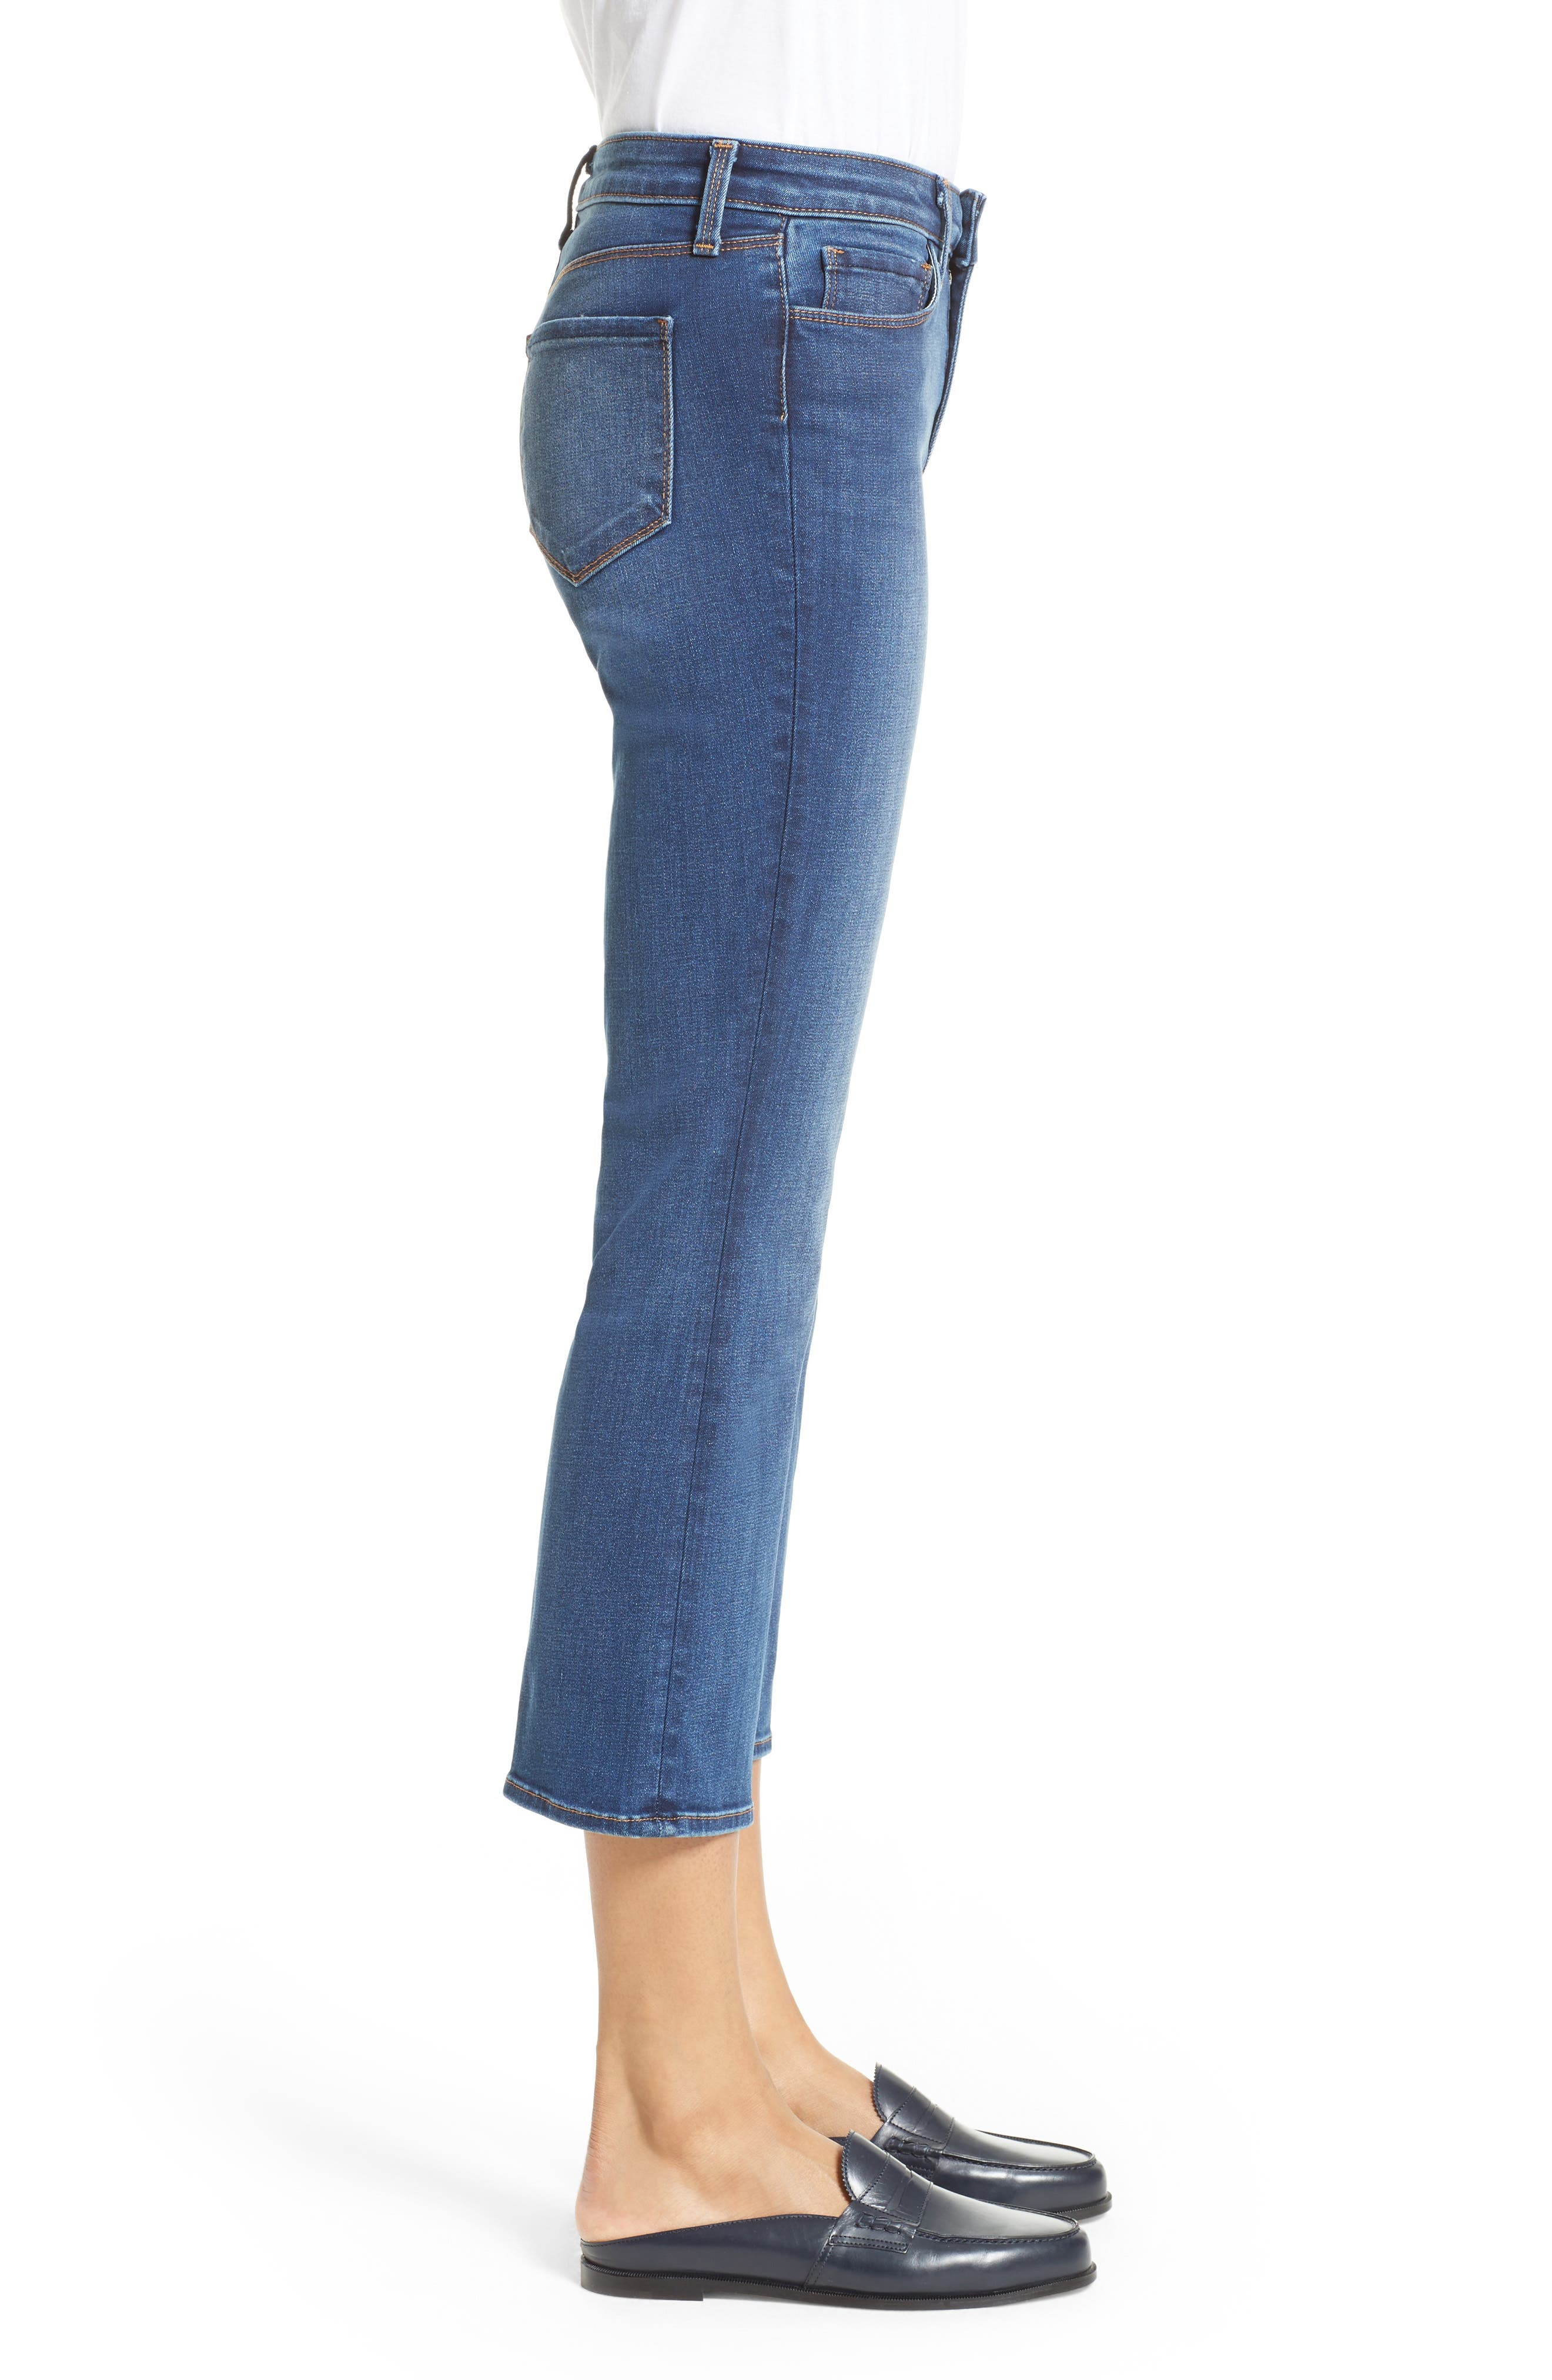 Alternate Image 3  - L'AGENCE Crop Baby Flare Jeans (Azul)